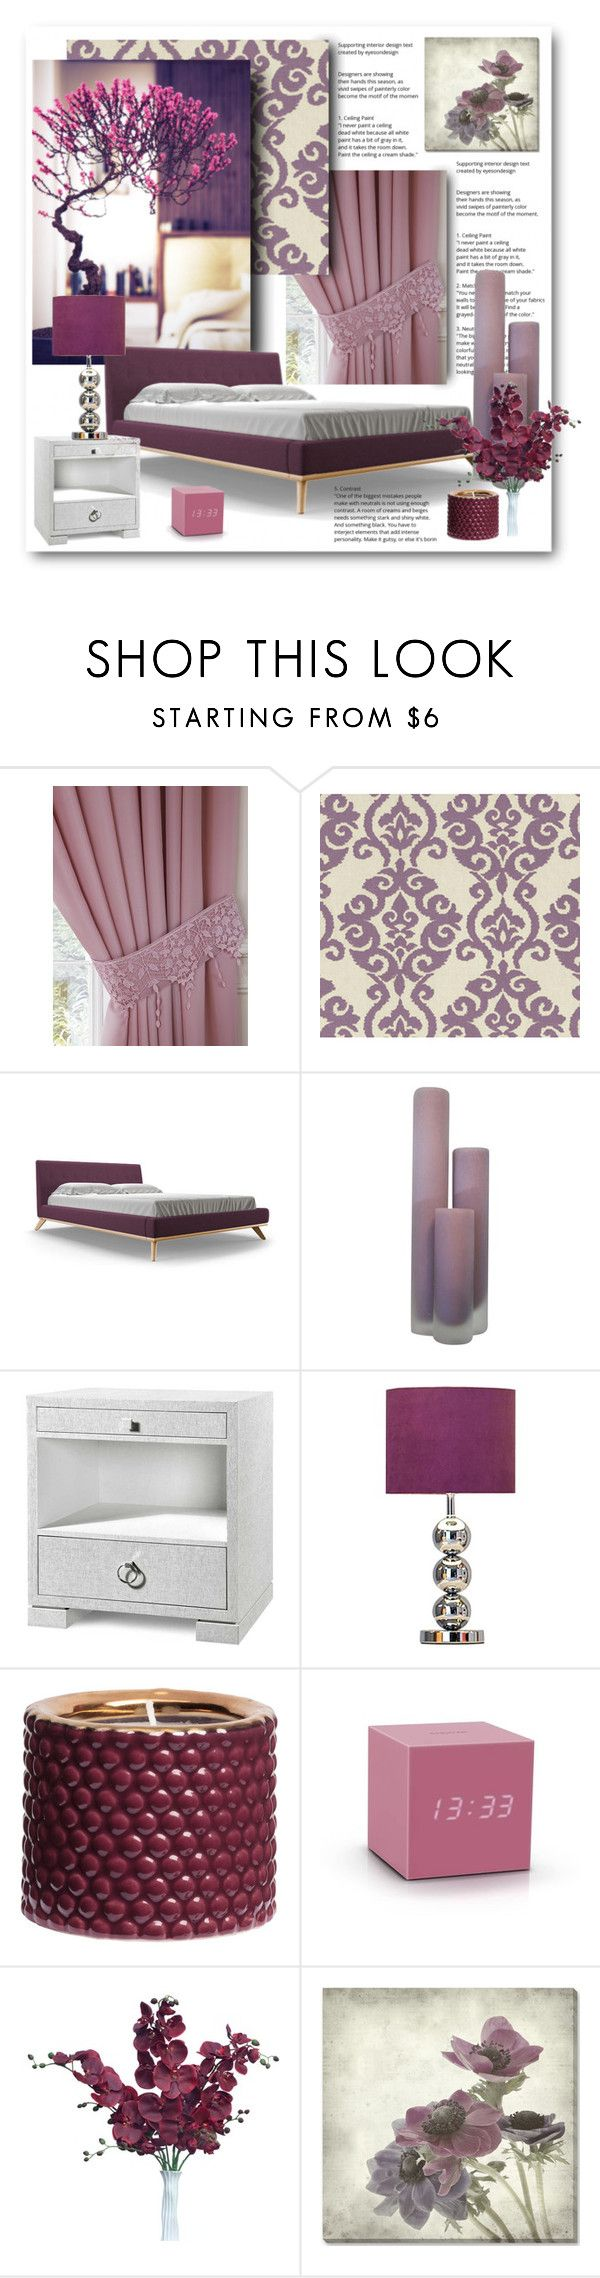 """""""Purple Kinds of Beautiful!"""" by bliznec ❤ liked on Polyvore featuring interior, interiors, interior design, home, home decor, interior decorating, Waverly, Joybird Furniture, Bungalow 5 and H&M"""